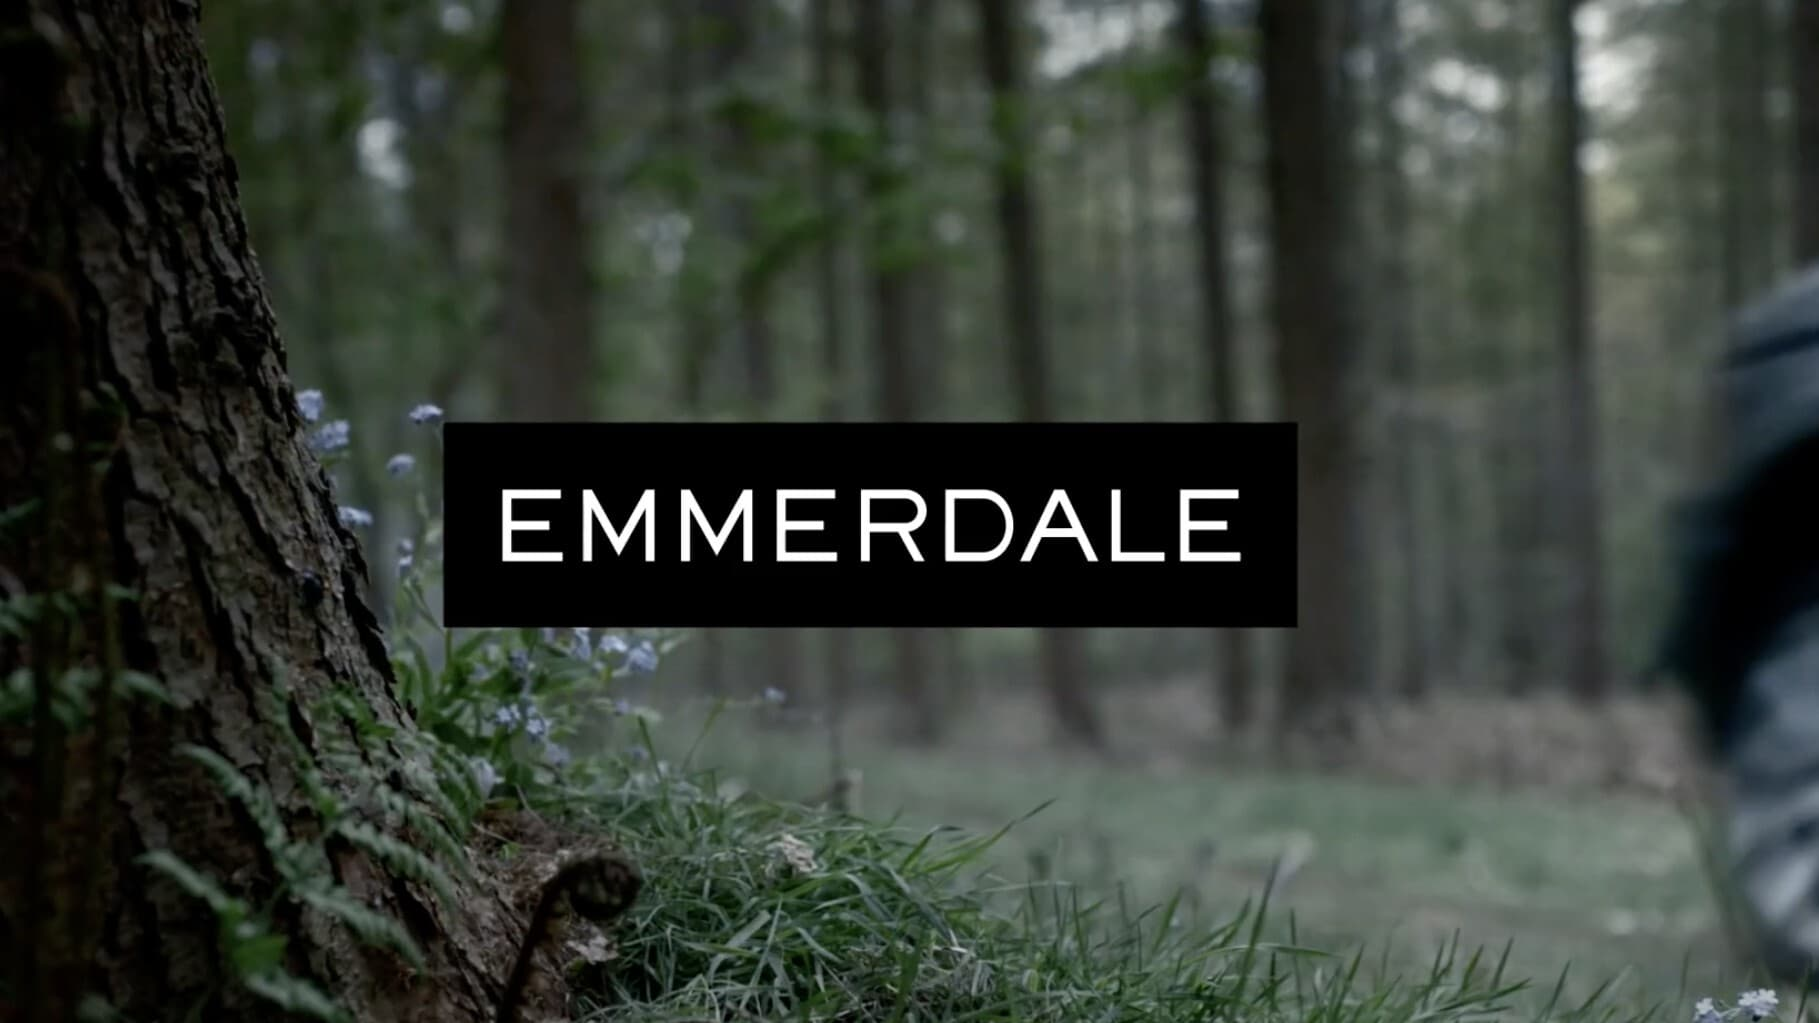 Emmerdale - Season 36 Episode 186 : August 12, 2007